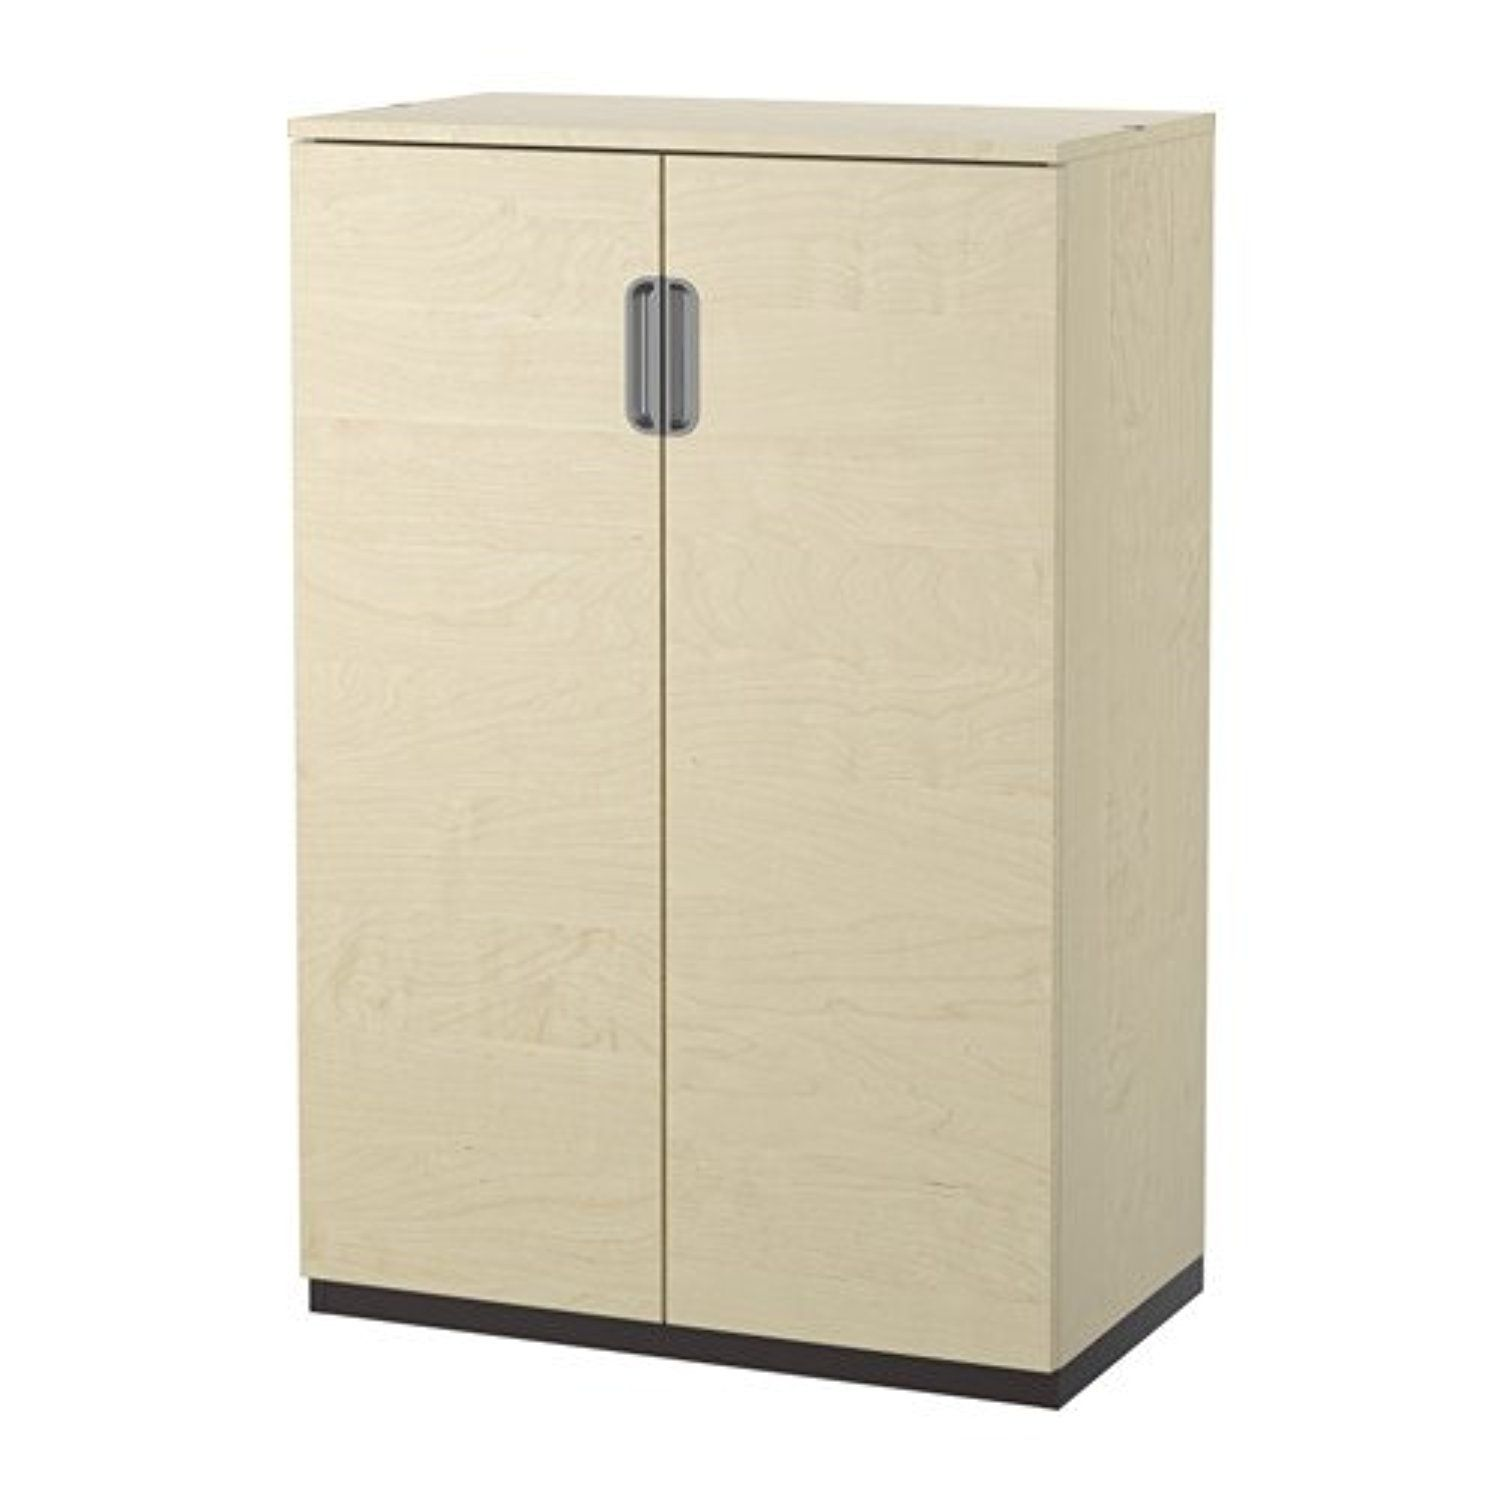 Ikea Cabinet with doors, brich veneer 14210.262629.204 -- Awesome products selected by Anna Churchill